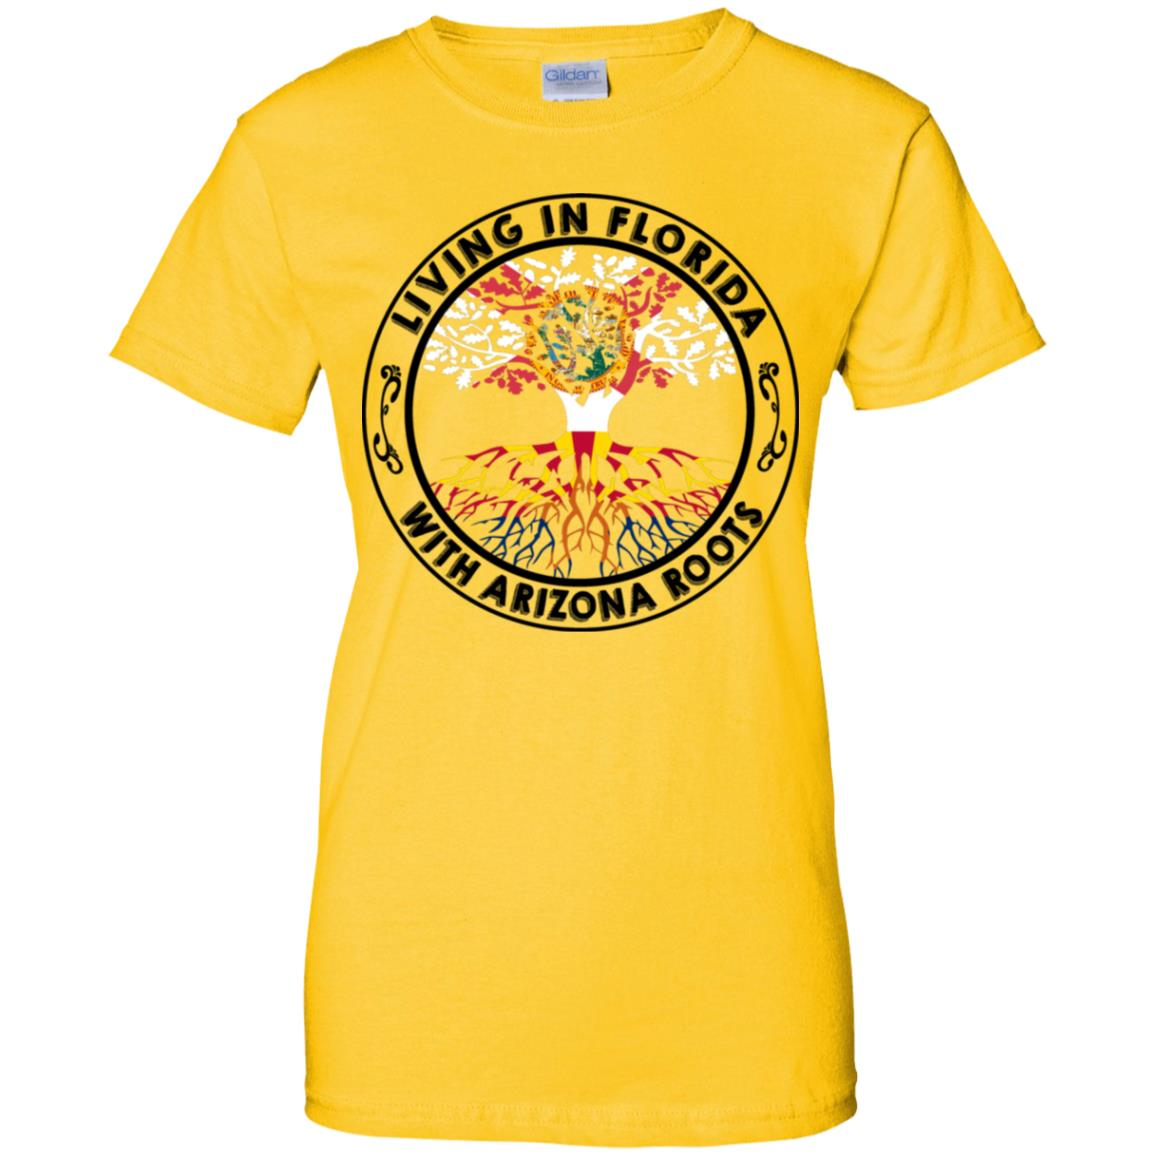 Living In Florida With Arizona Roots T Shirt